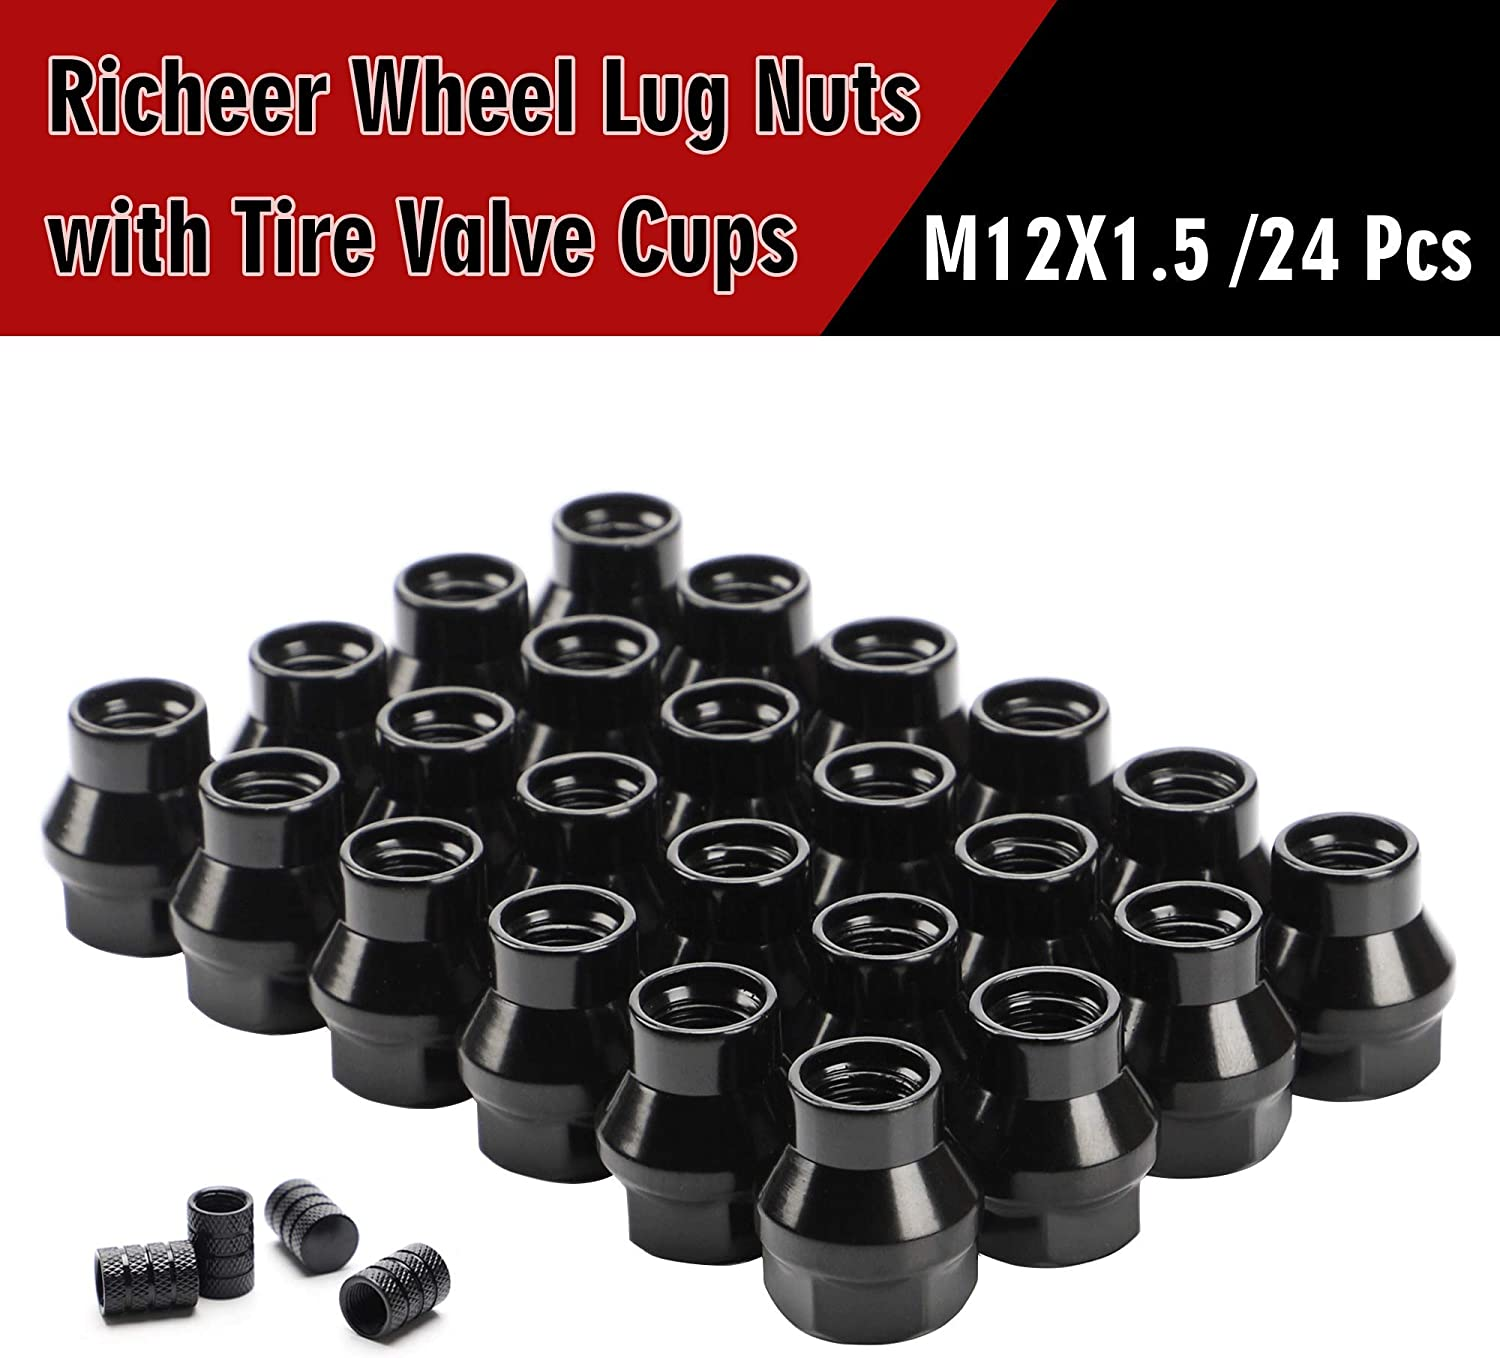 24PCS 7mm Shank Thread Pitch M12x1.5 Aftermarket Wheels Lug Nuts for Tacoma 4Runner Tundra FJ Cruiser Ventury Sequoia Fortuner Land Cruiser HILUX GX460 12x1.5 Black Extend Open Lug Nuts